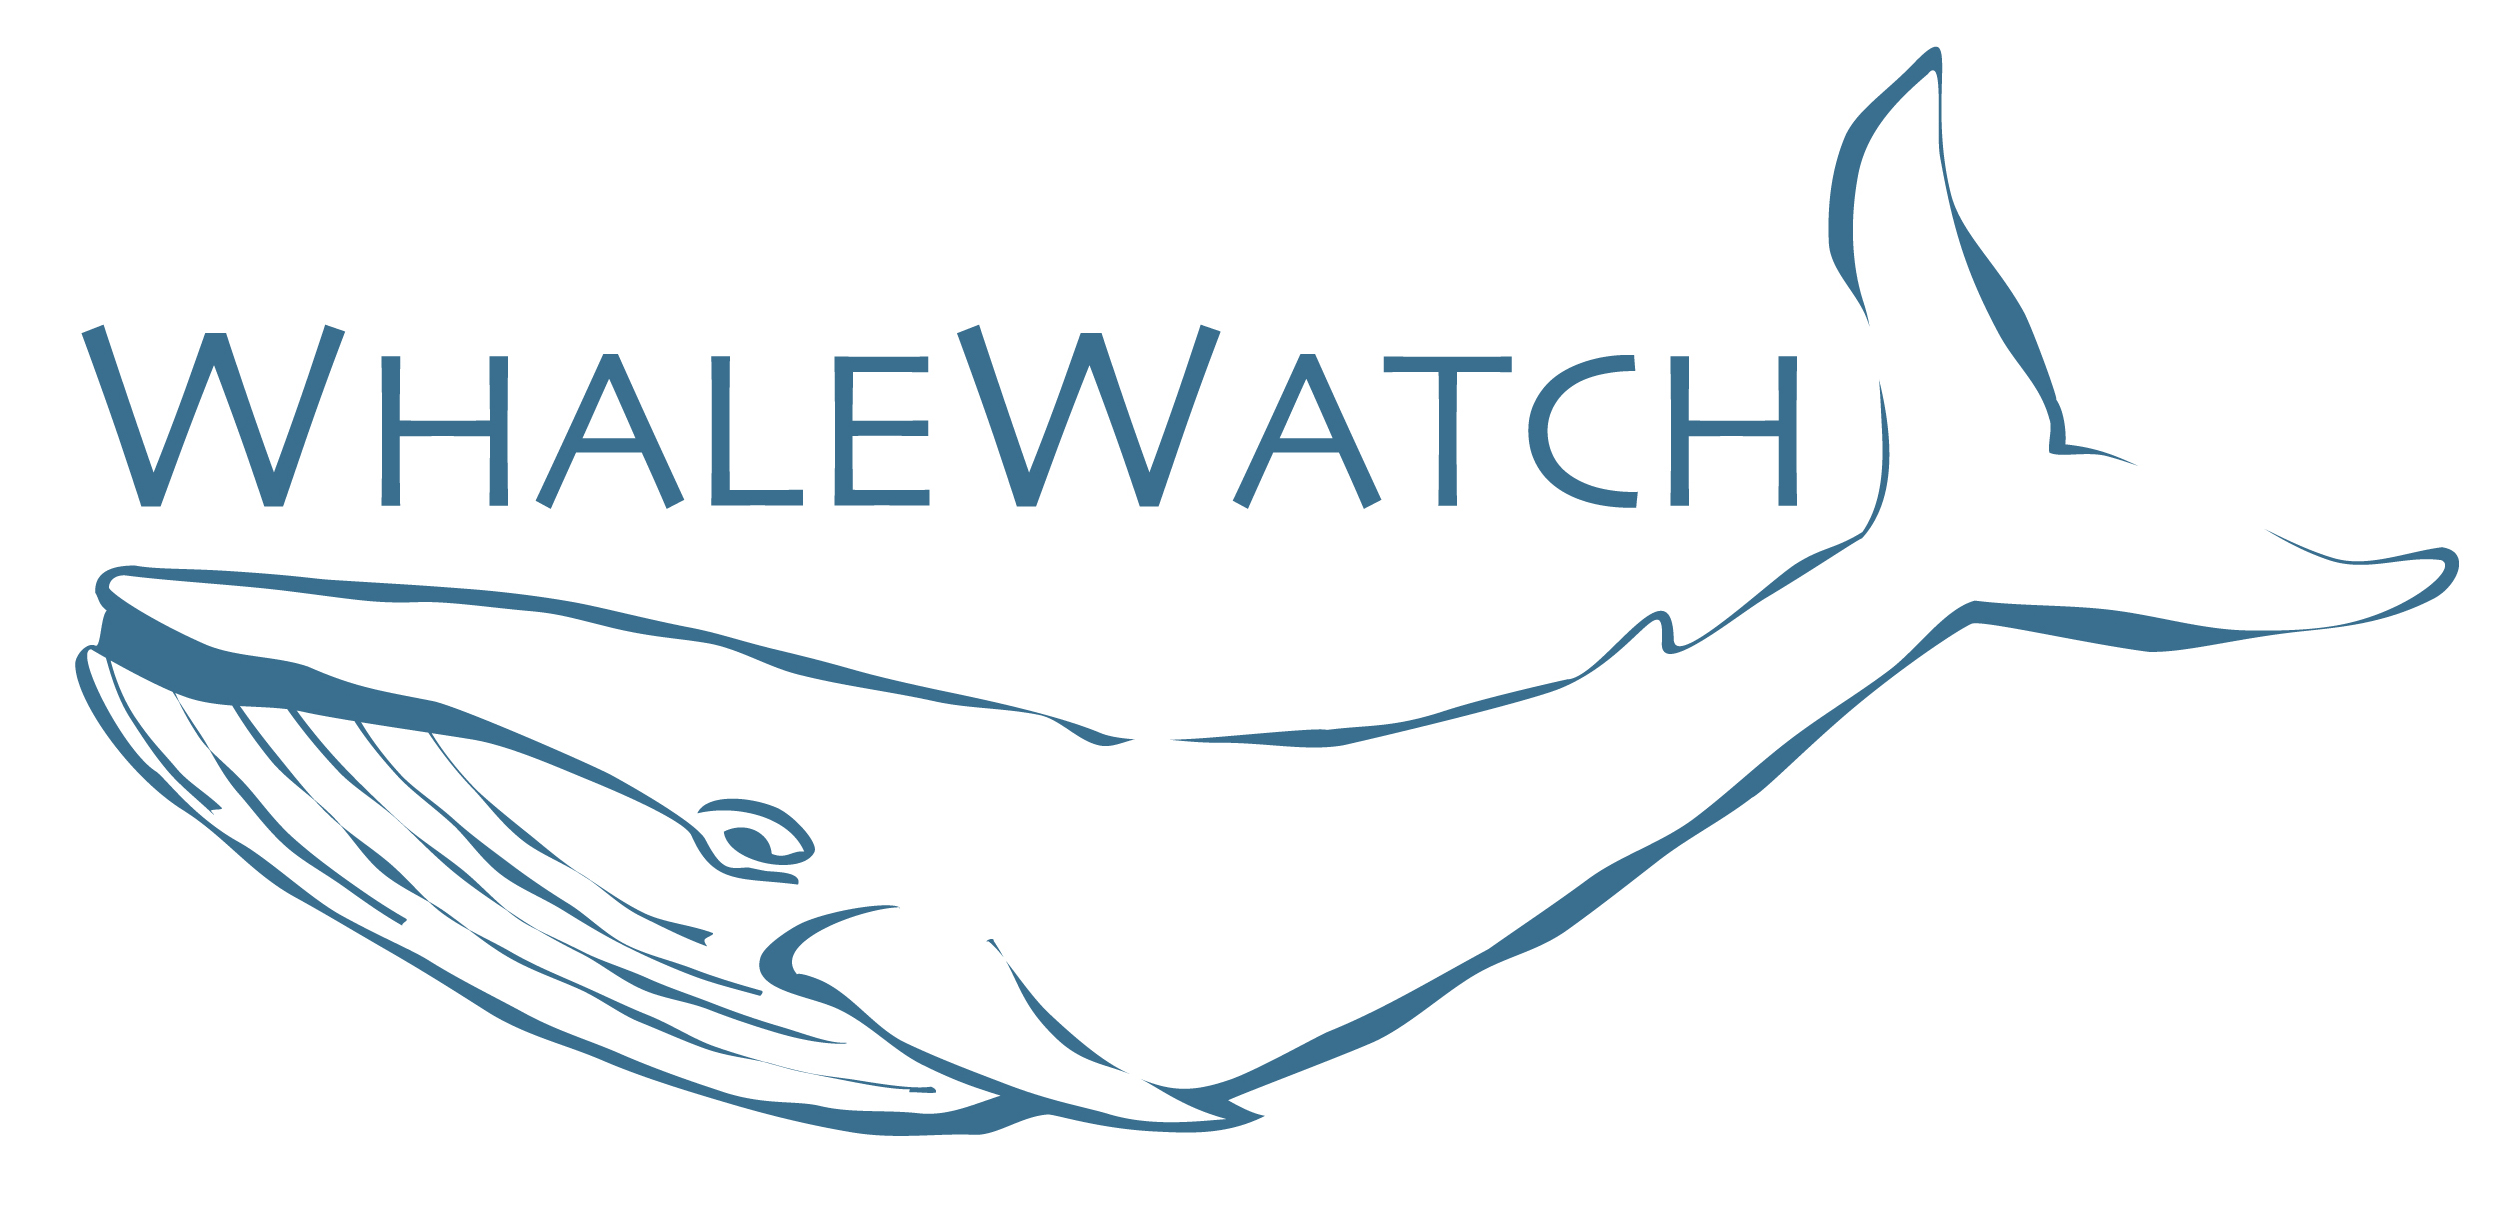 whalewatch logo copy.jpg